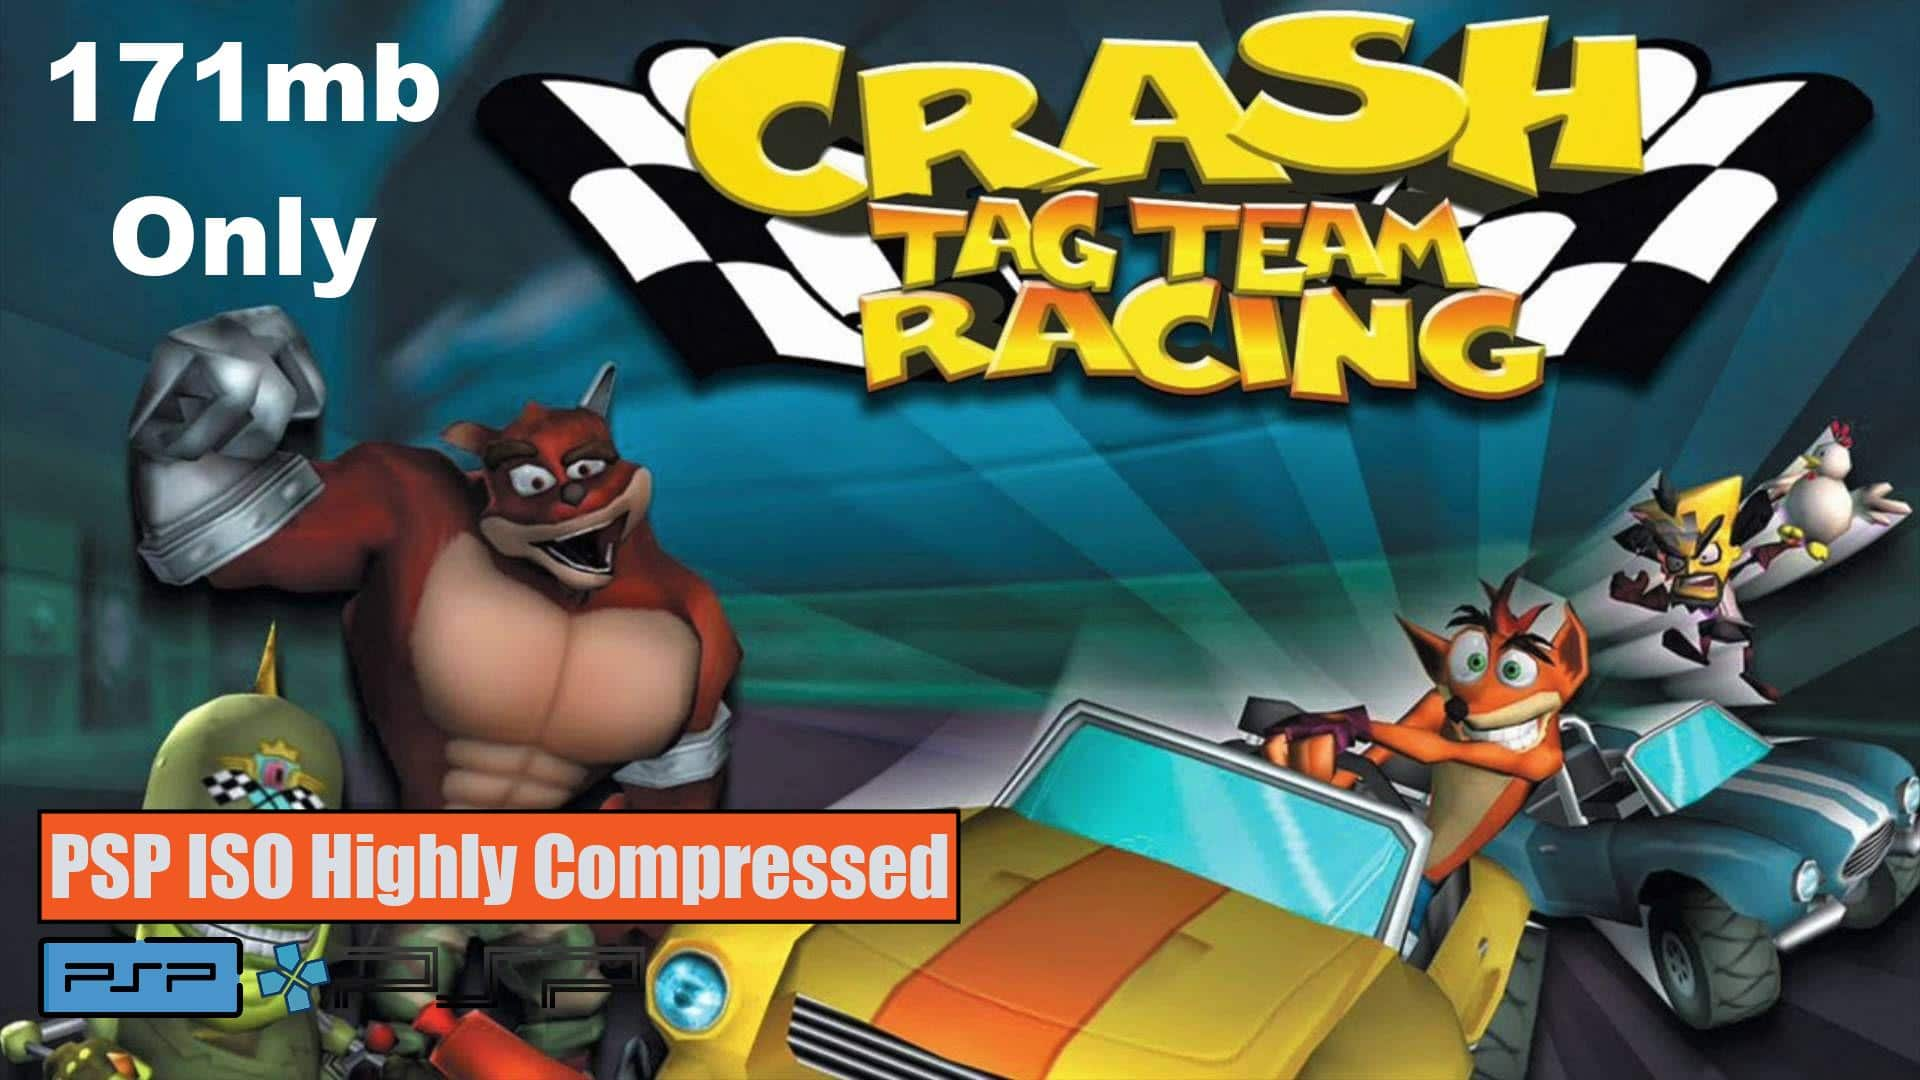 Crash Tag Team Racing PSP ISO Highly Compressed